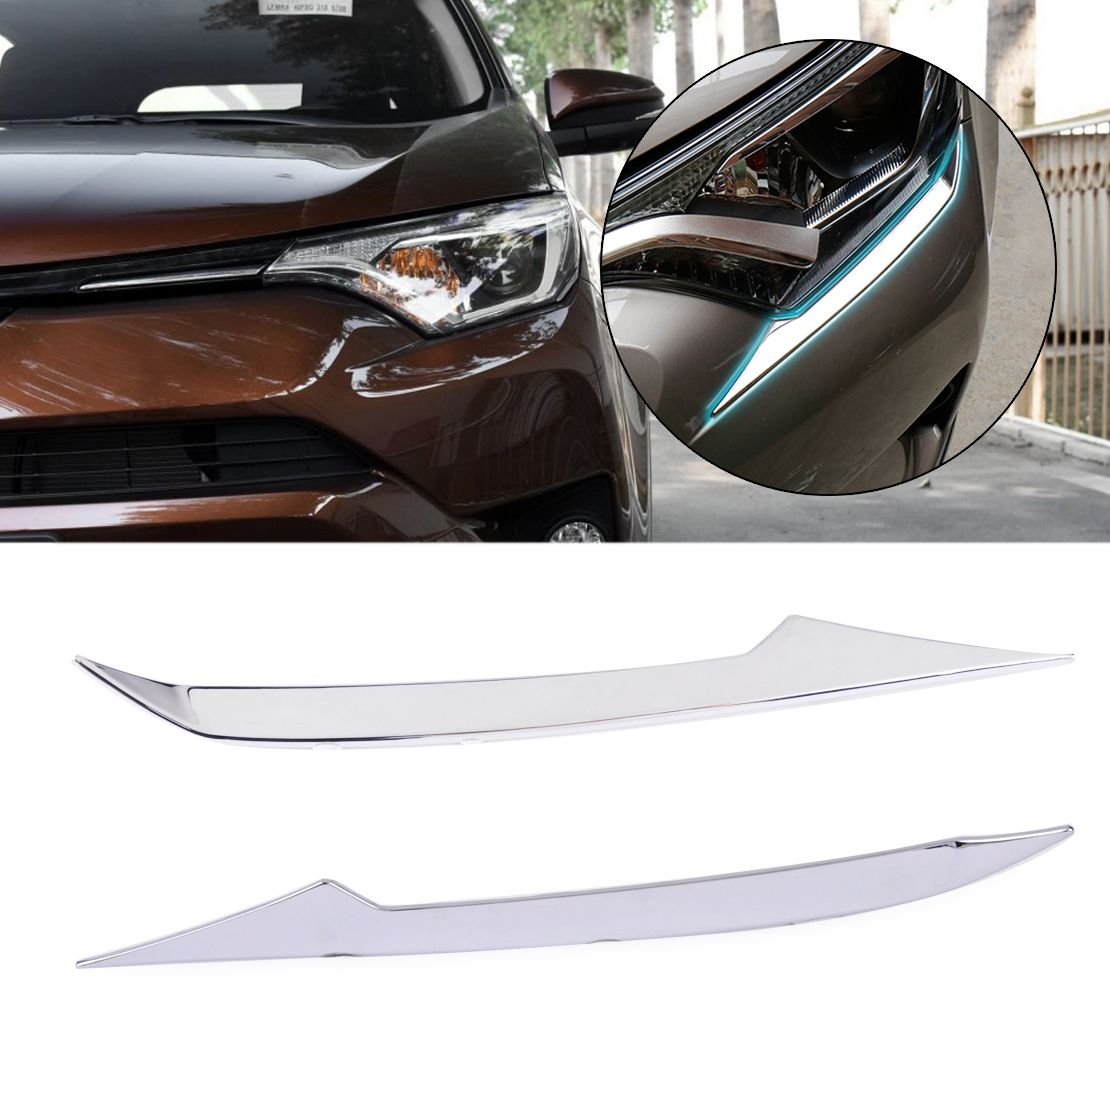 DWCX 2x Car Styling Decoration Left + Right Chrome Plated Front Head Light Eyelid Trim Molding Fit for TOYOTA RAV4 2016 2017